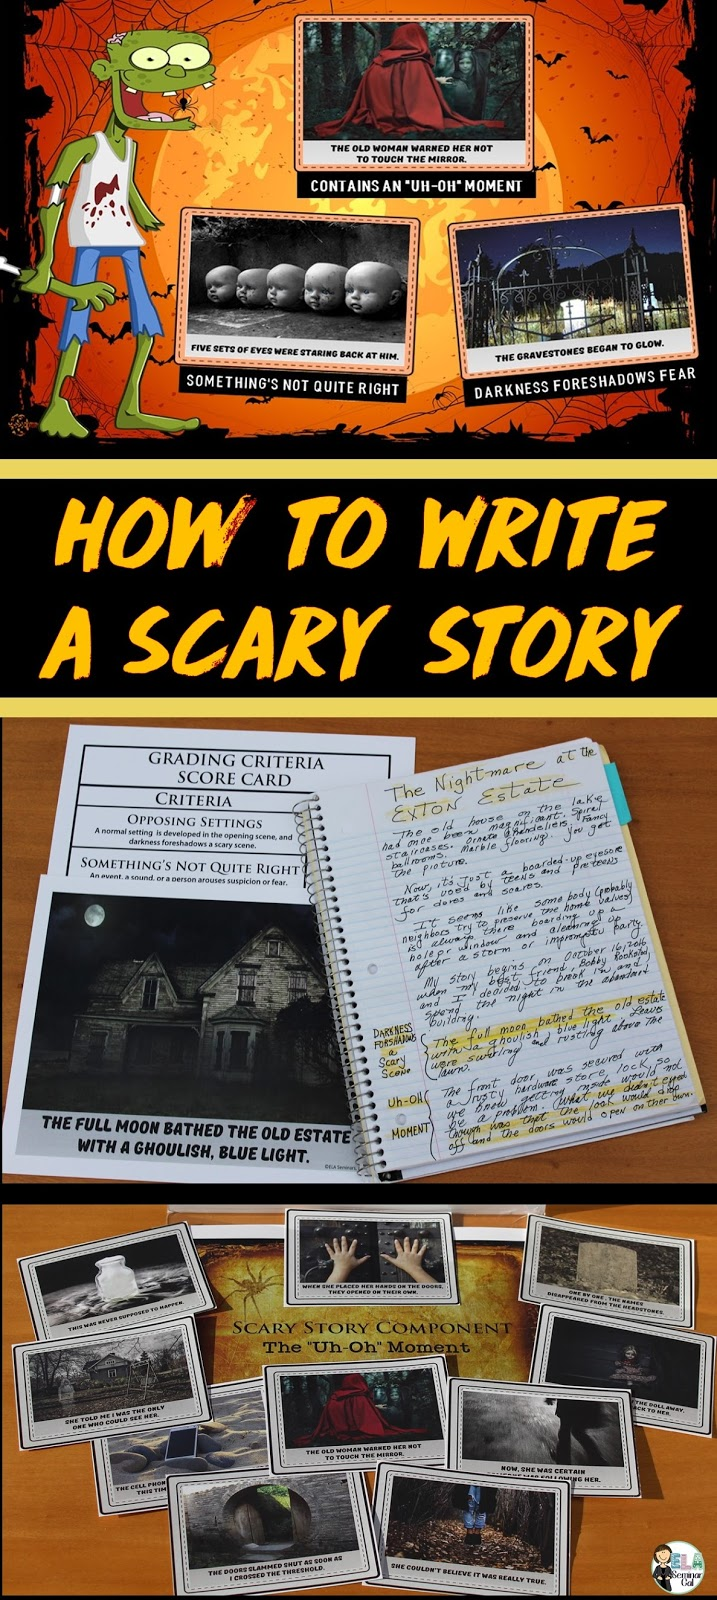 ela seminar gal how to write a scary story that readers will love scary story writing 101